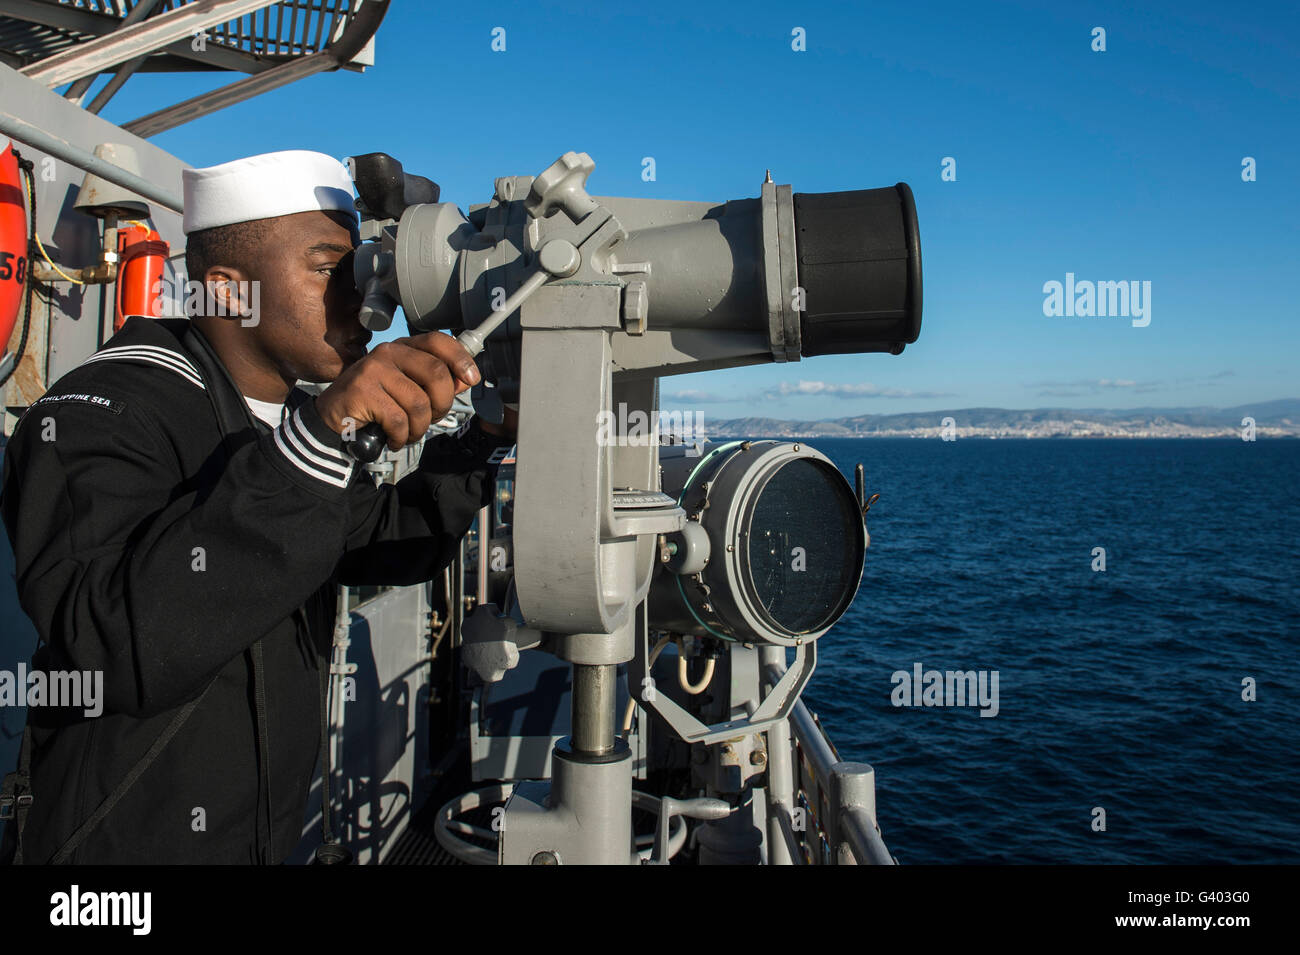 Seaman stands lookout watch on USS Philippine Sea. - Stock Image